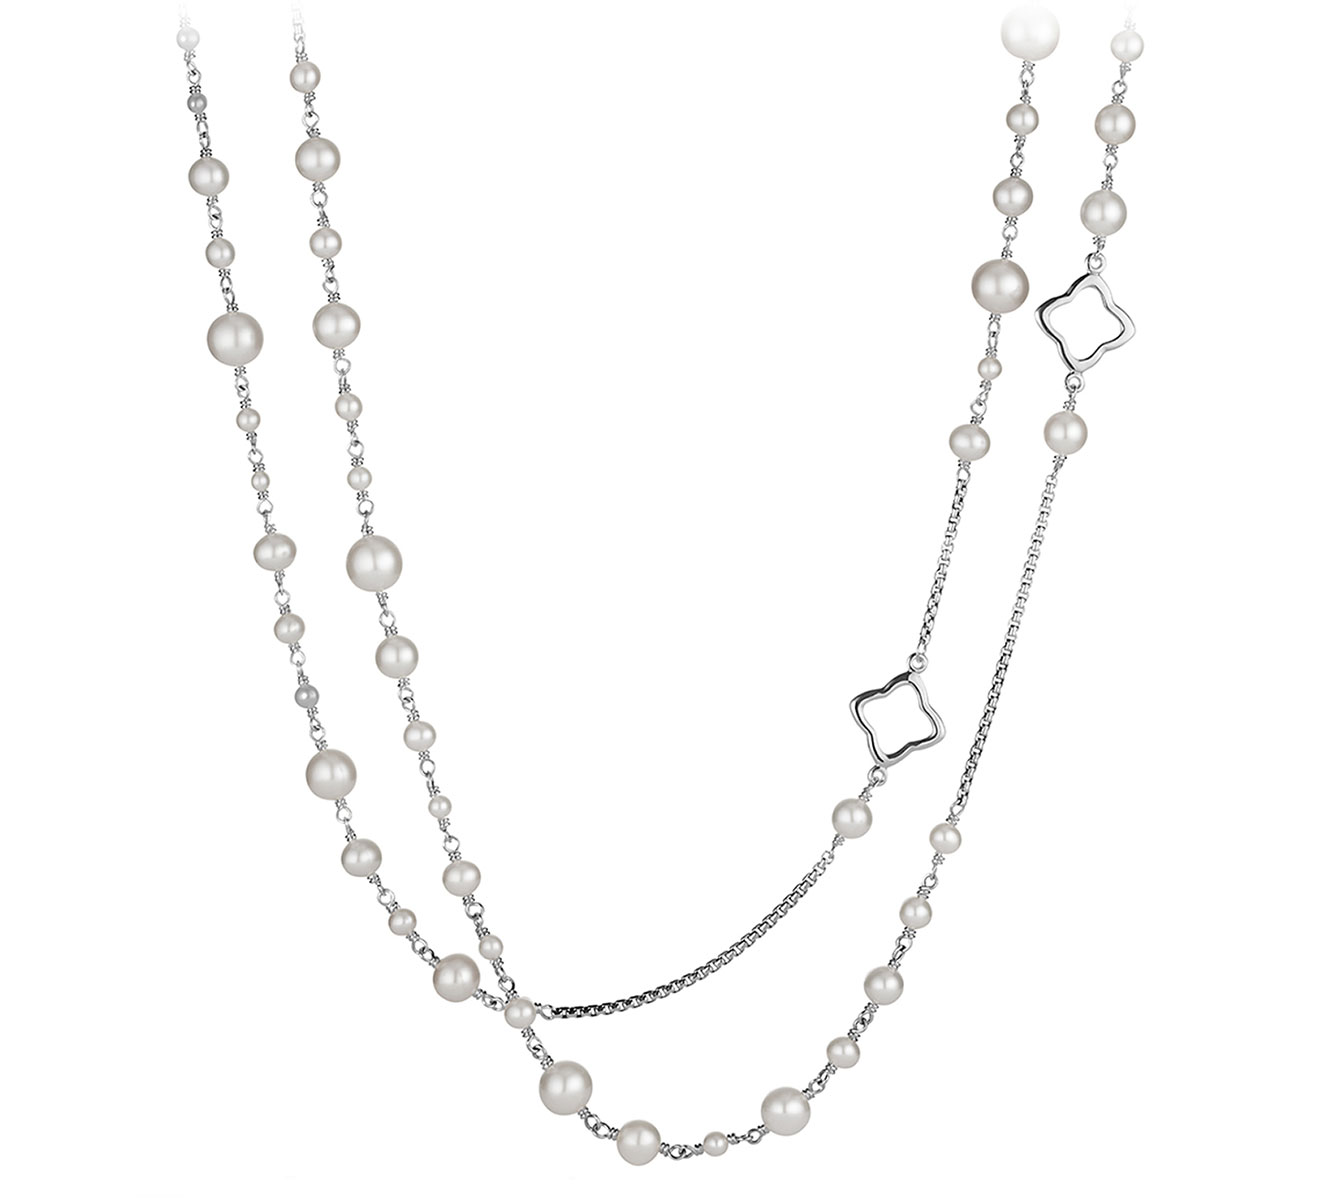 Колье DAVID YURMAN Bijoux N09410 SSBPE48 - фото 1 – Mercury